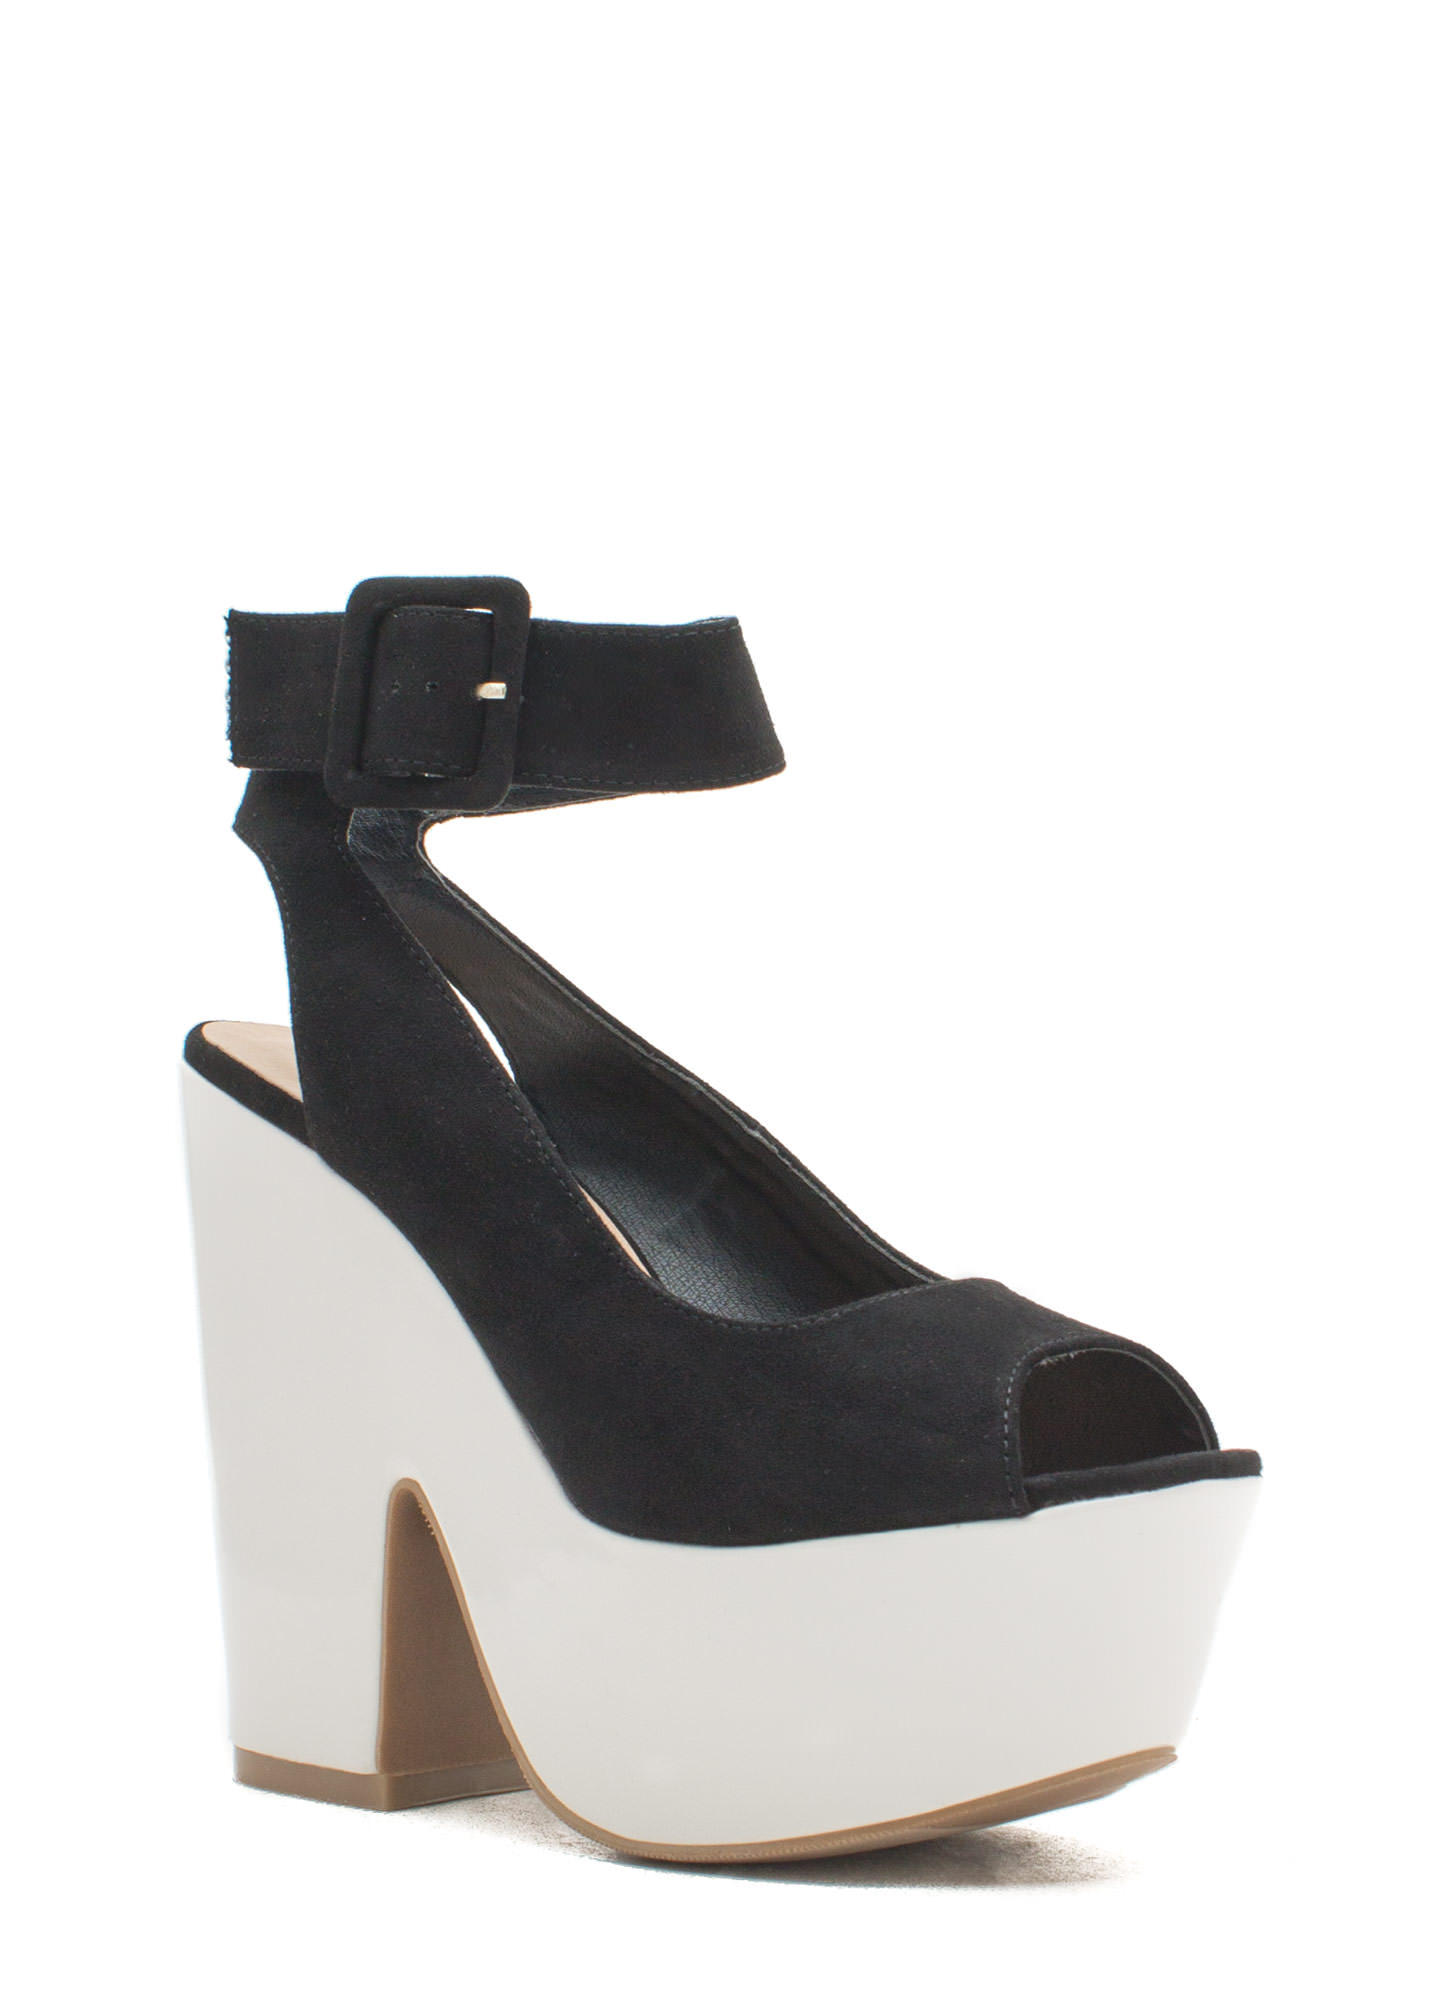 Thru Thick 'N Thin Platform Heels BLACK